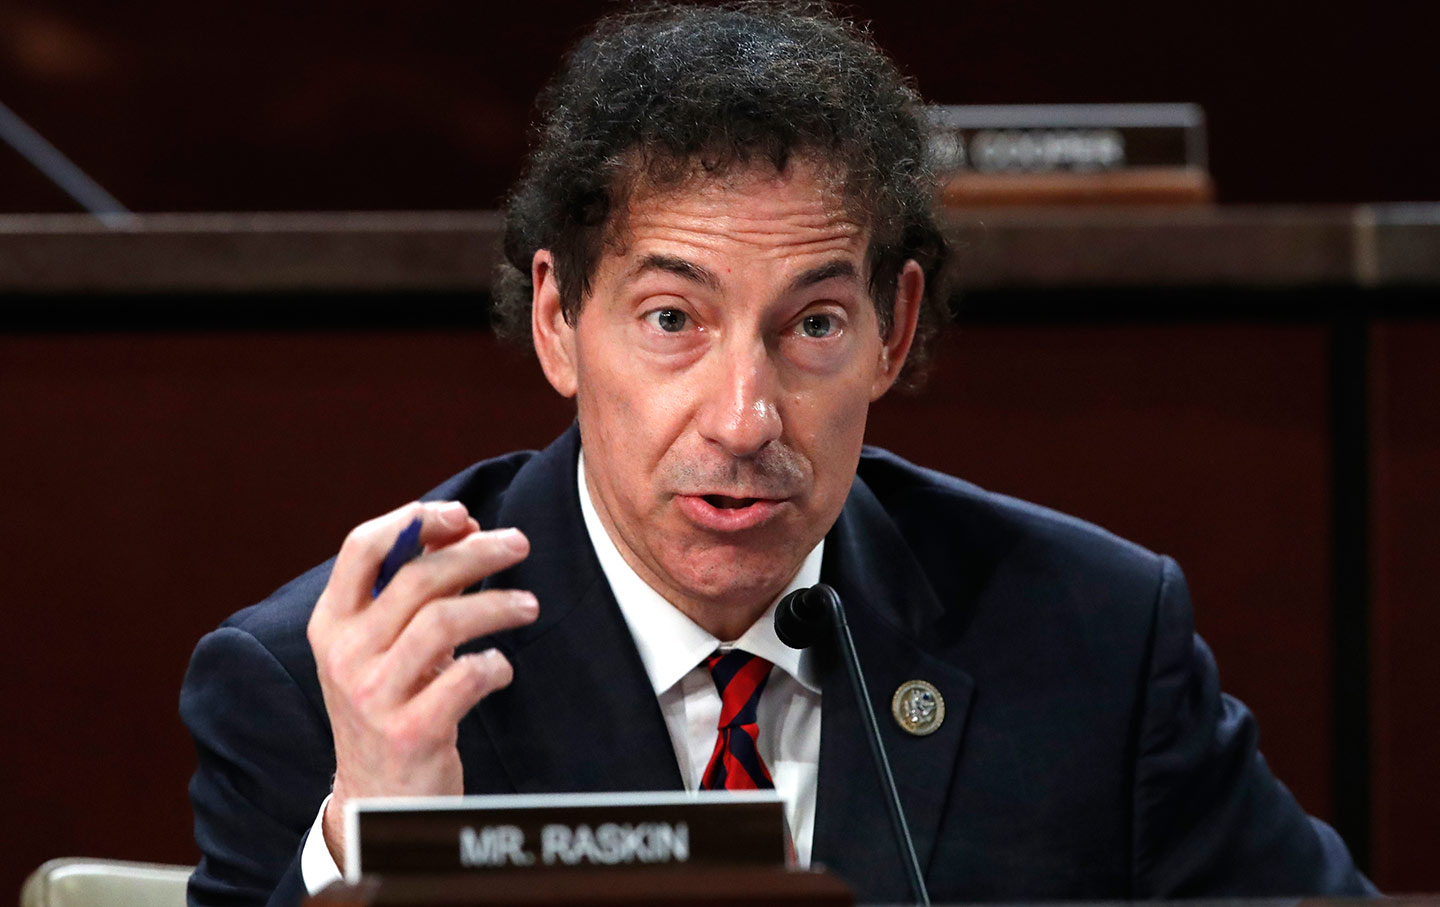 Jamie Raskin at a House Committee on the Judiciary and House Committee on Oversight and Government Reform hearing